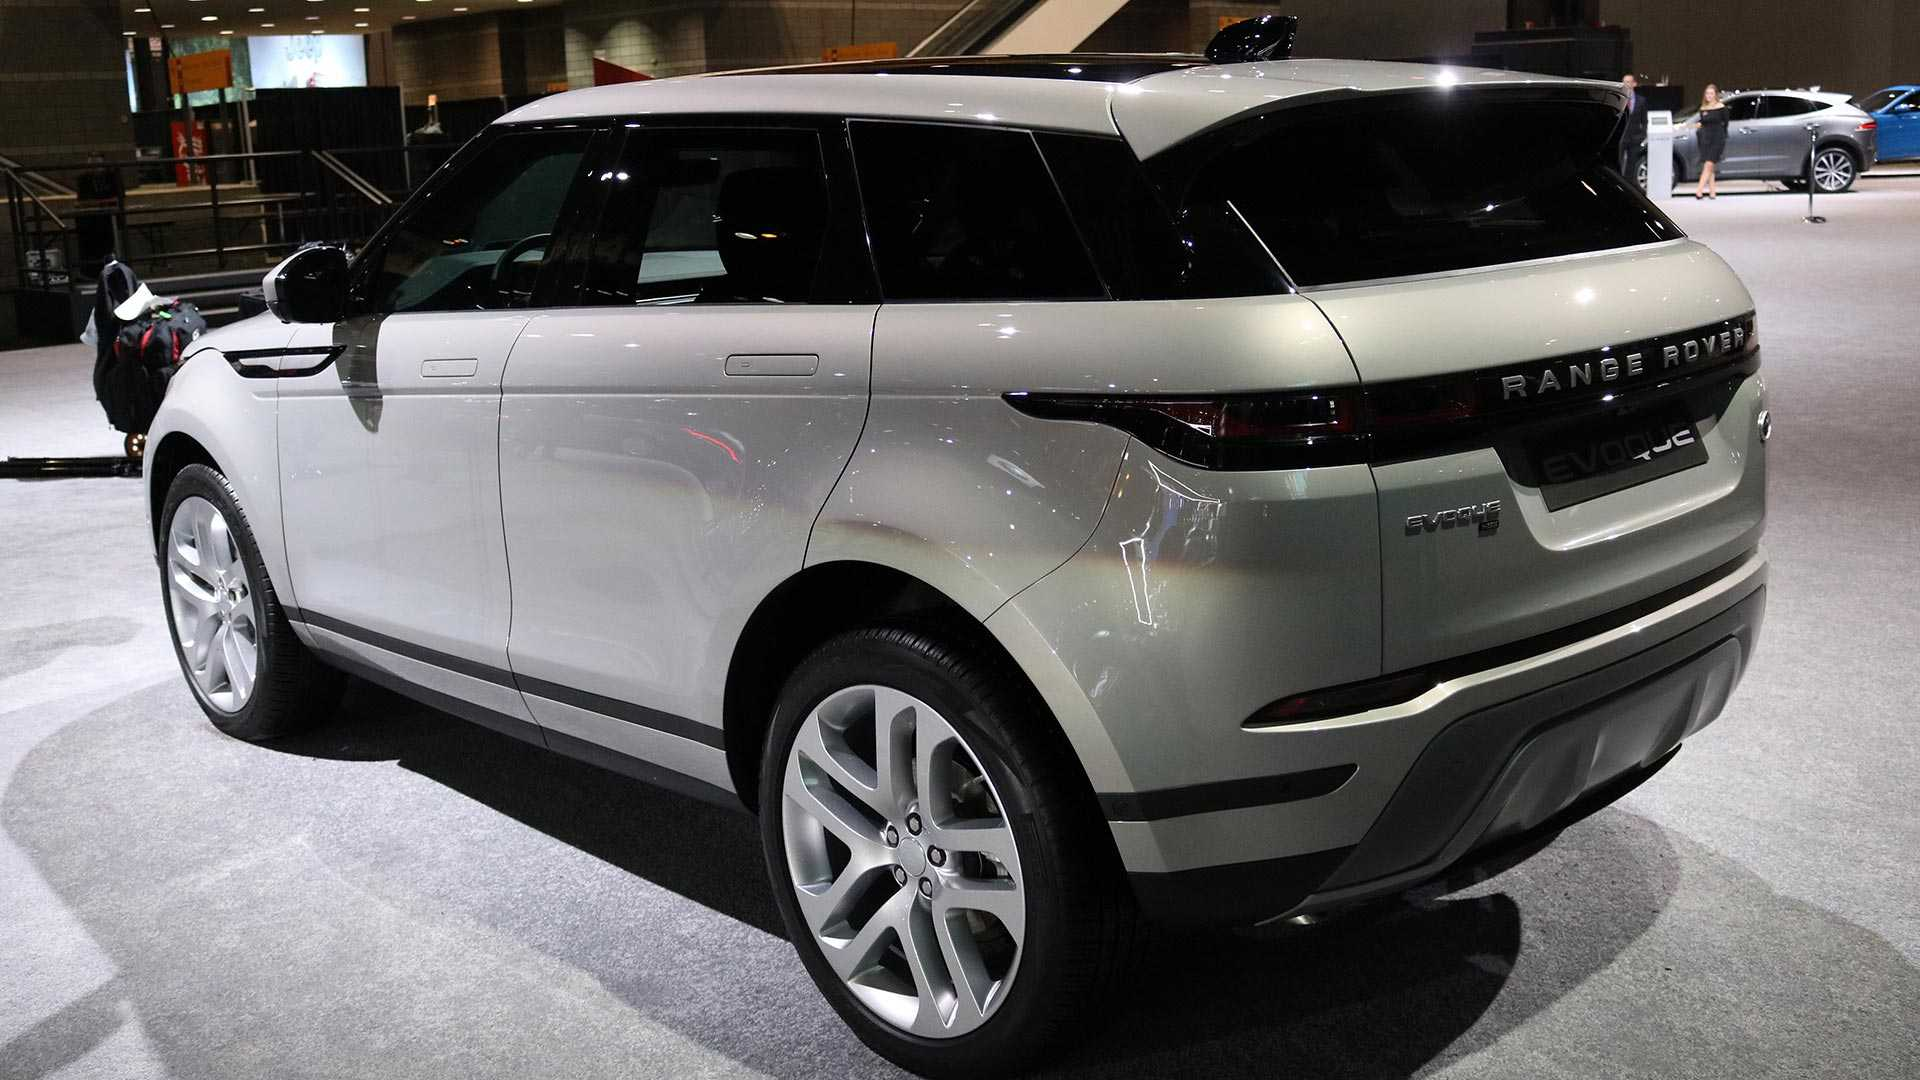 2020 Range Rover Evoque Options And Price >> Most Expensive 2020 Land Rover Range Rover Evoque Costs 75 135